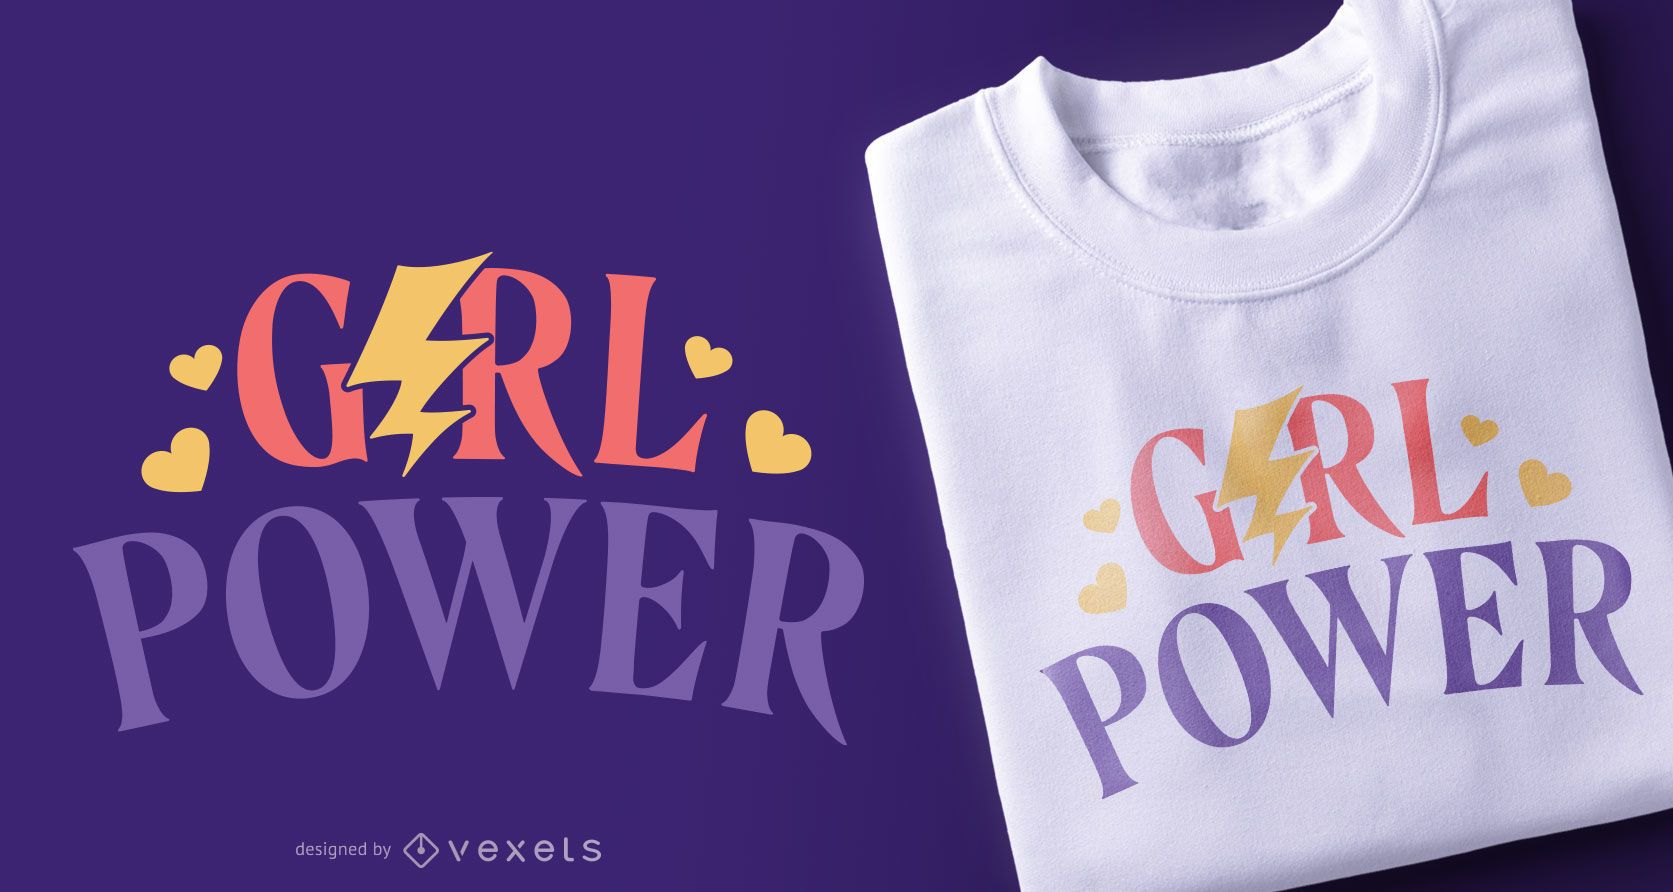 Girl power quote t-shirt design